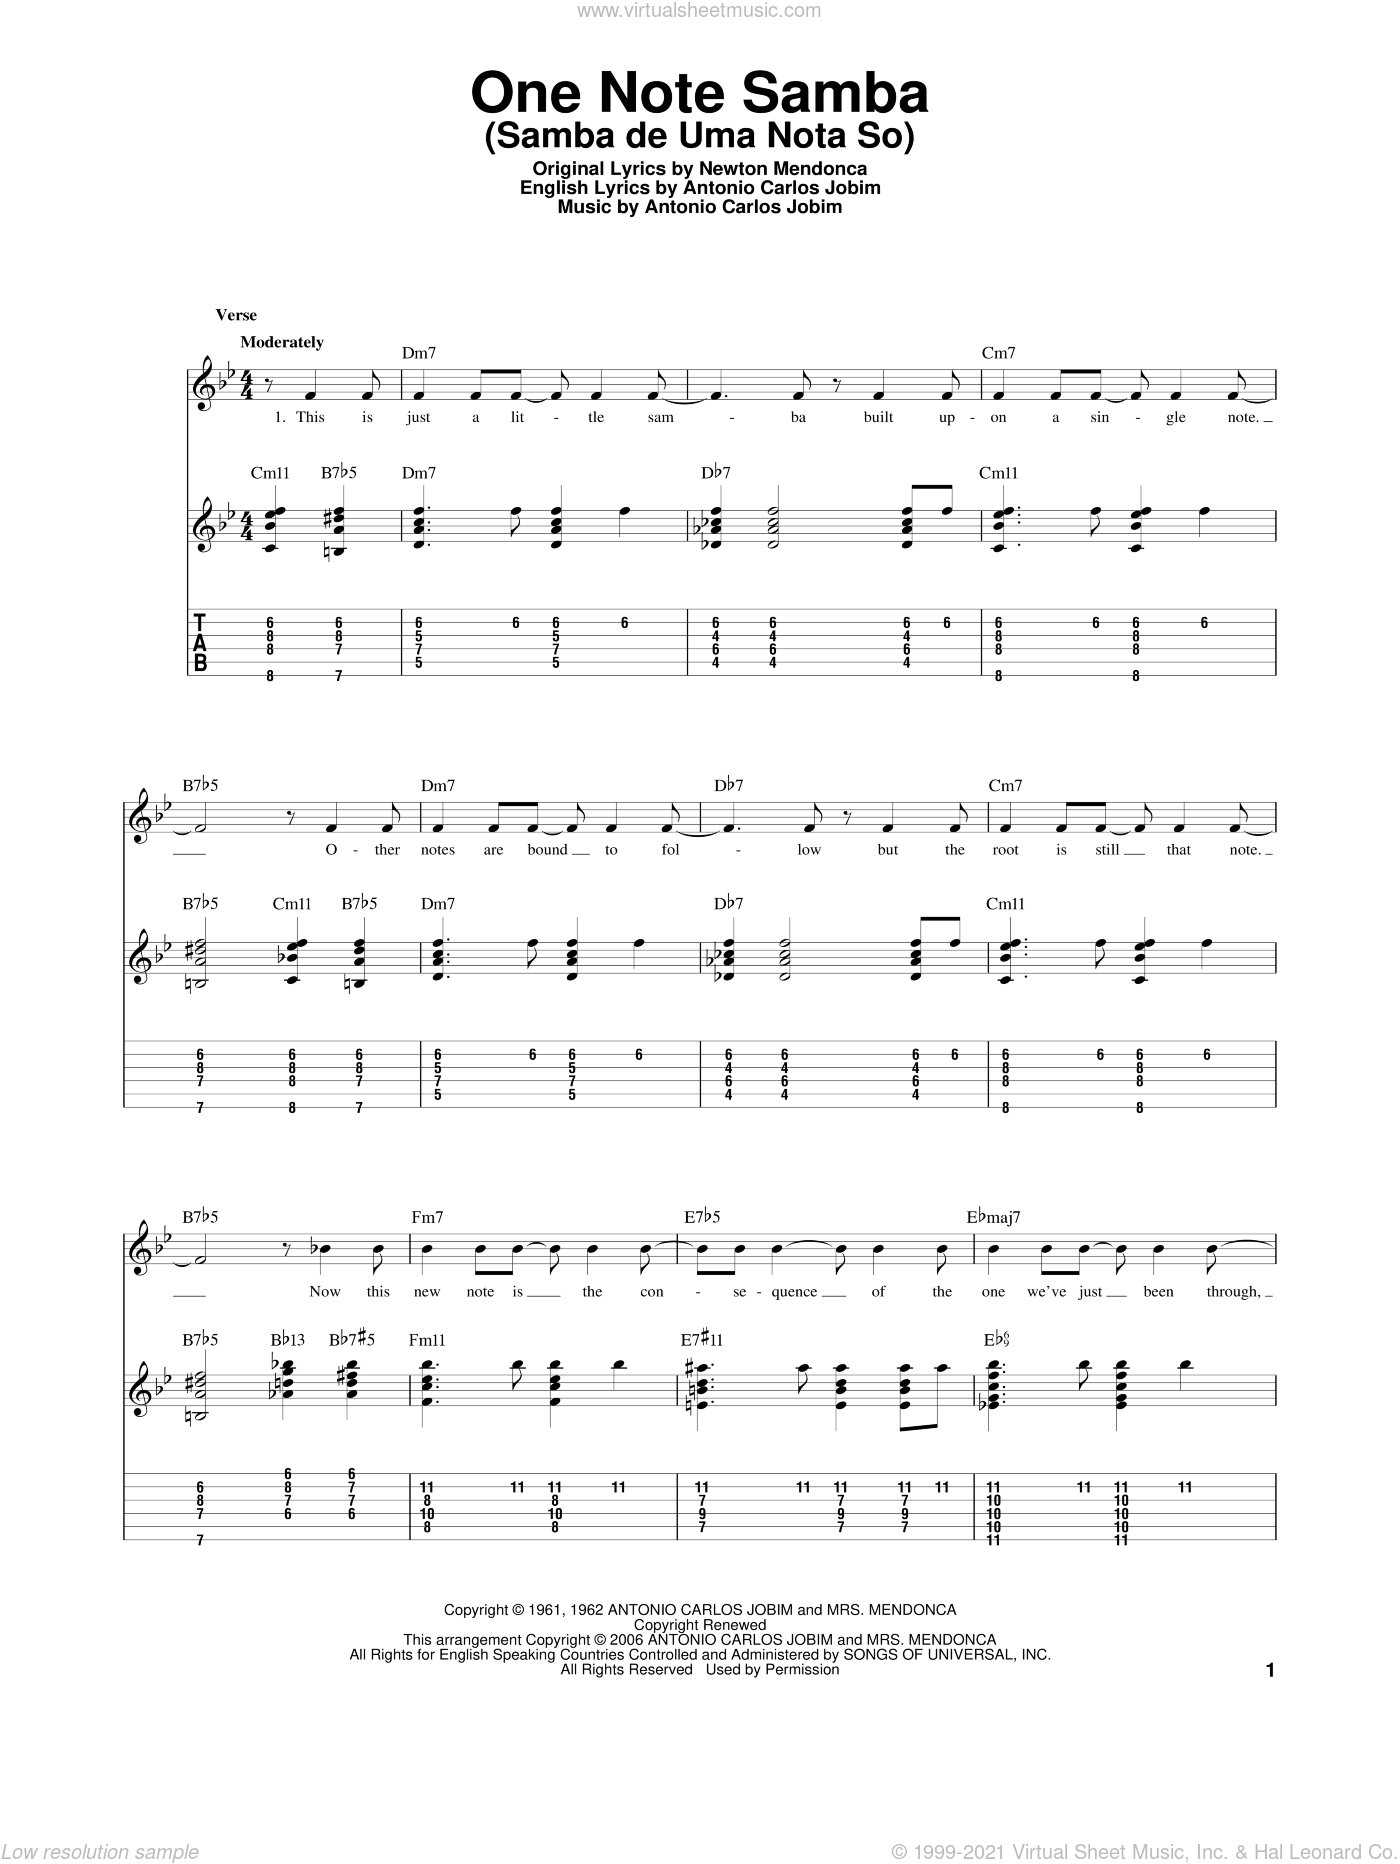 One Note Samba (Samba De Uma Nota So) sheet music for guitar solo by Newton Mendonca and Antonio Carlos Jobim. Score Image Preview.